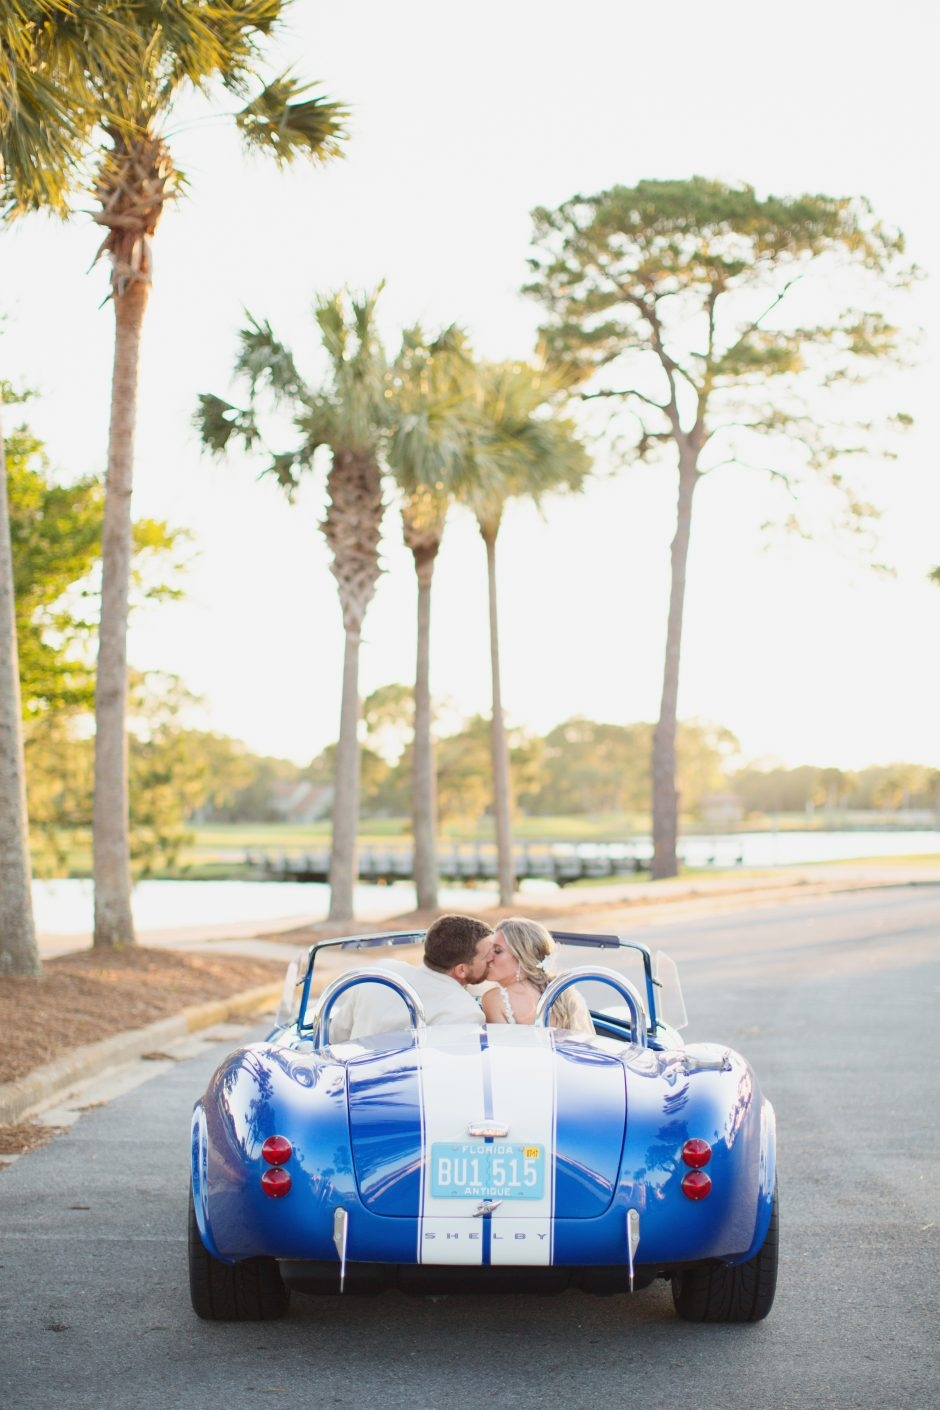 Bride and groom kissing in convertible